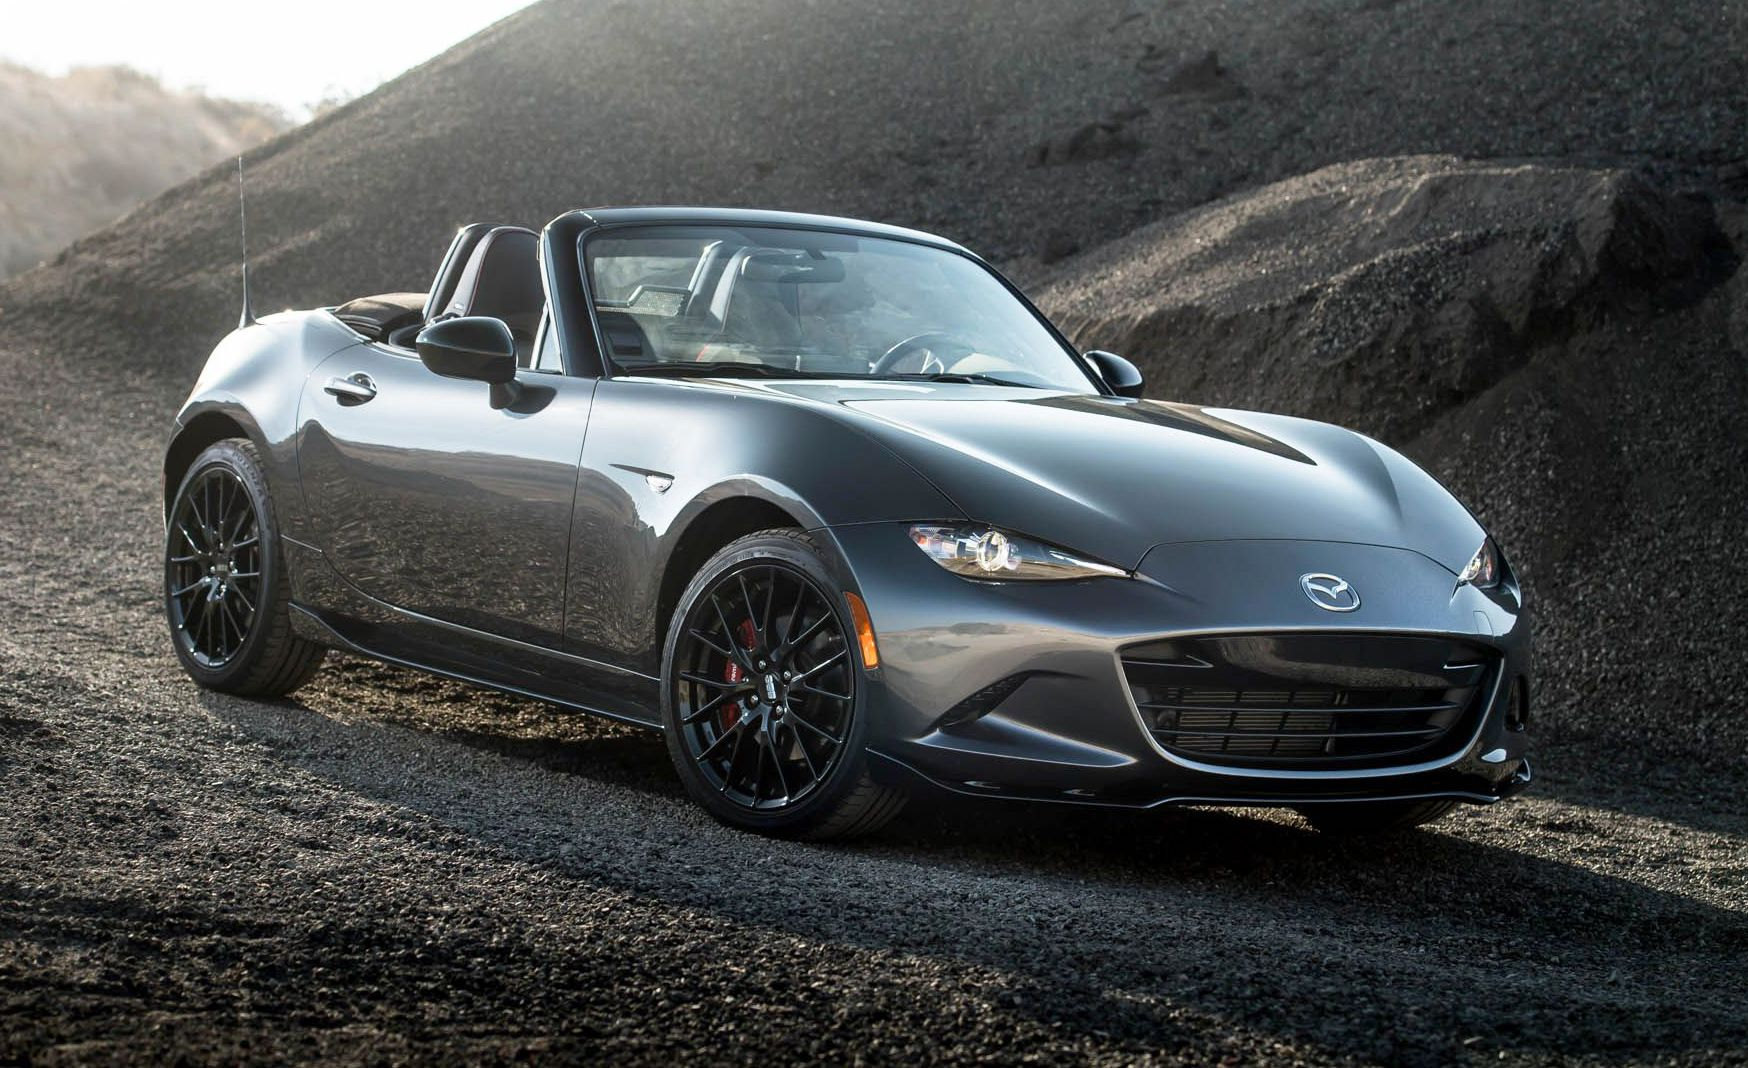 Mazda's MX-5 Miata: The Definitive Sports Car Gets Even Better for 2019